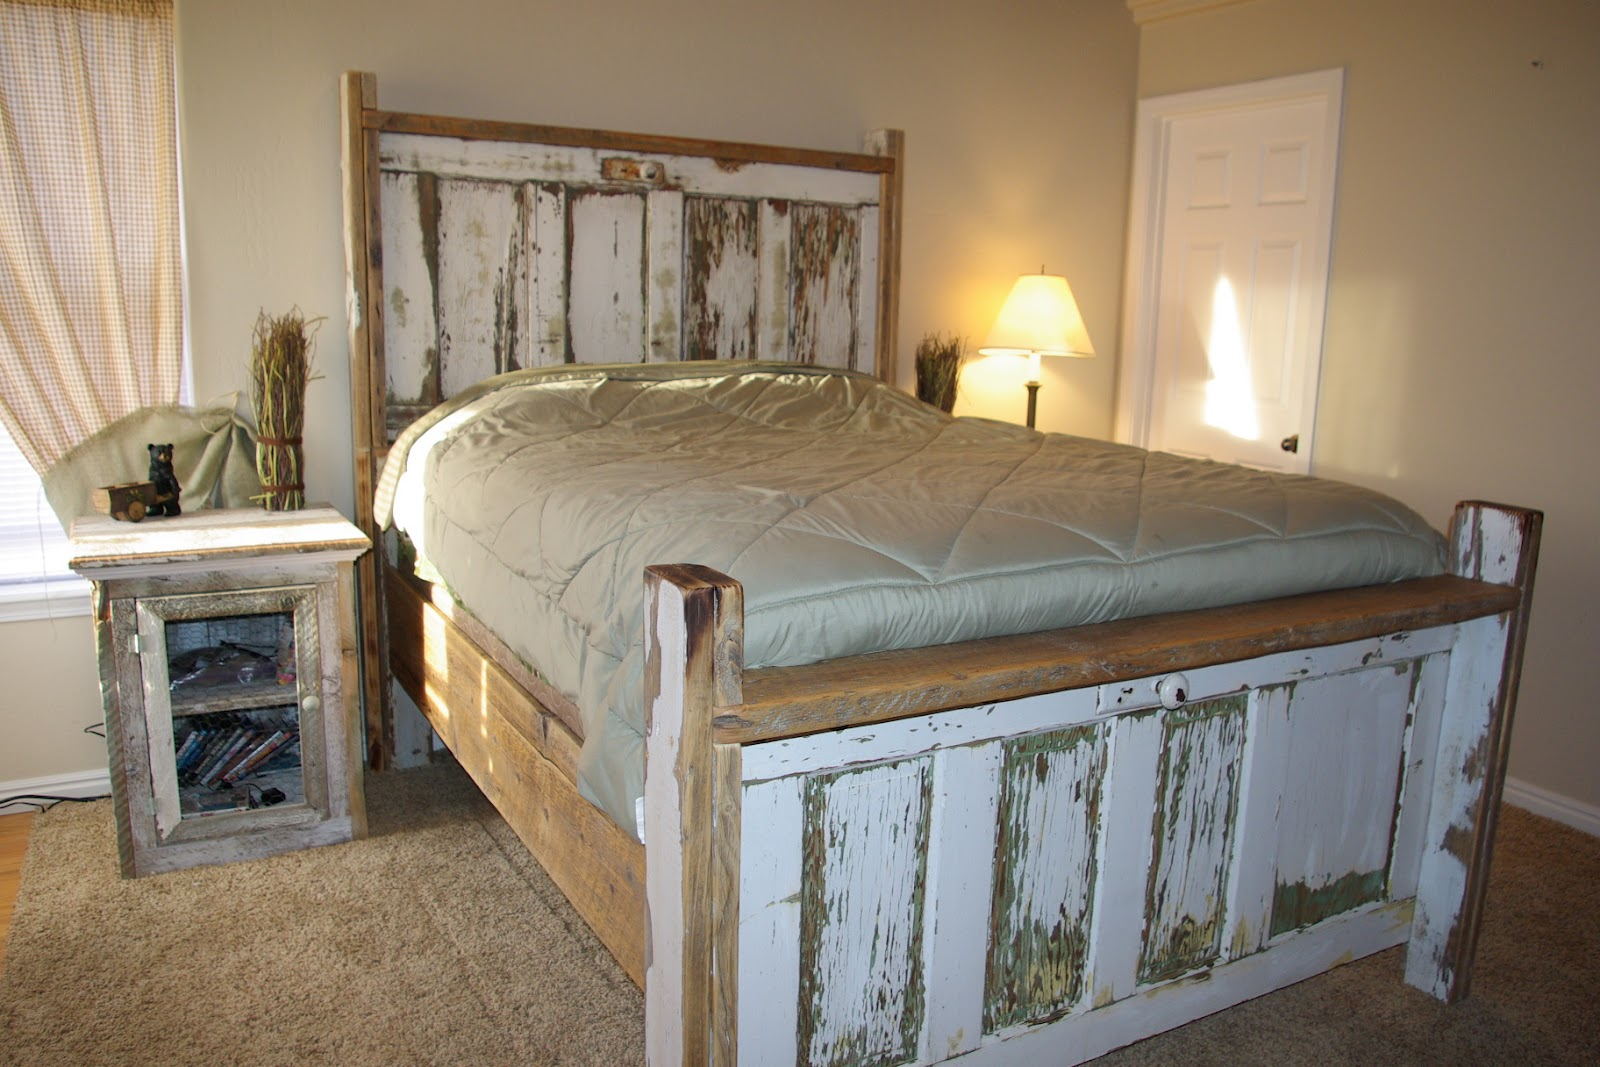 reclaimed rustics vintage door headboard. Black Bedroom Furniture Sets. Home Design Ideas